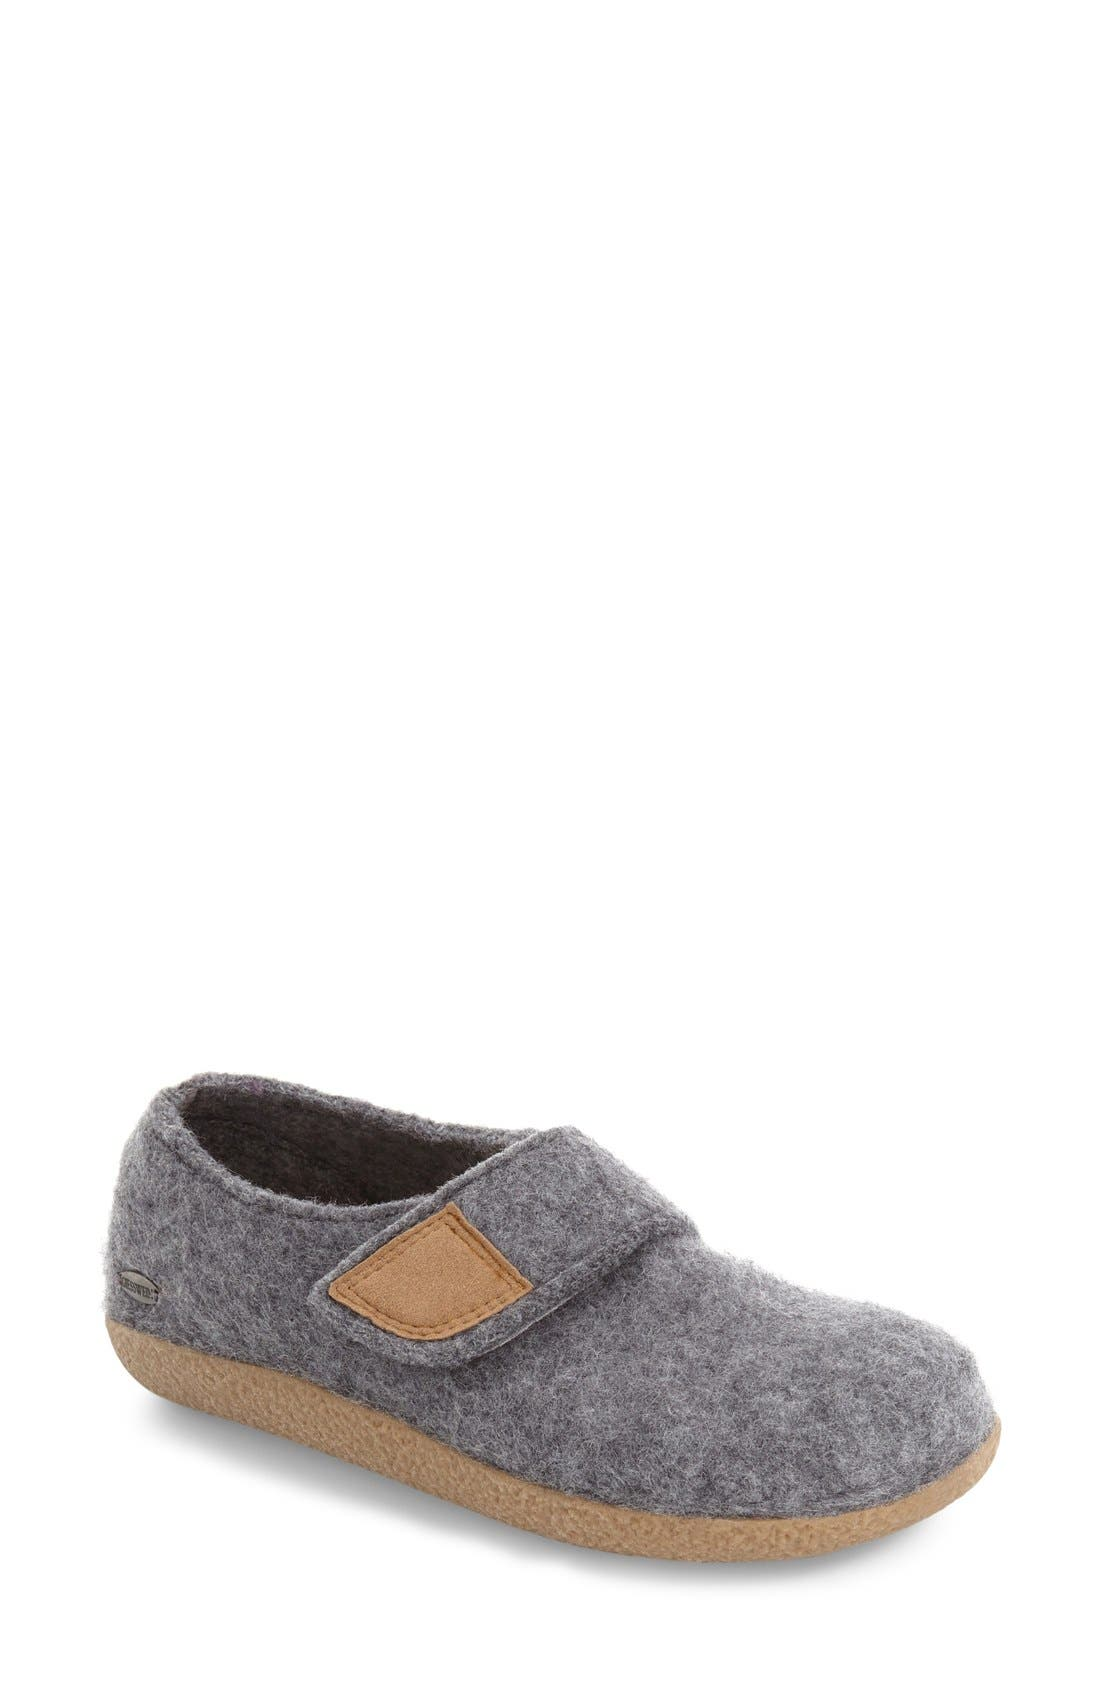 GIESSWEIN Camden Water Repellant Slipper